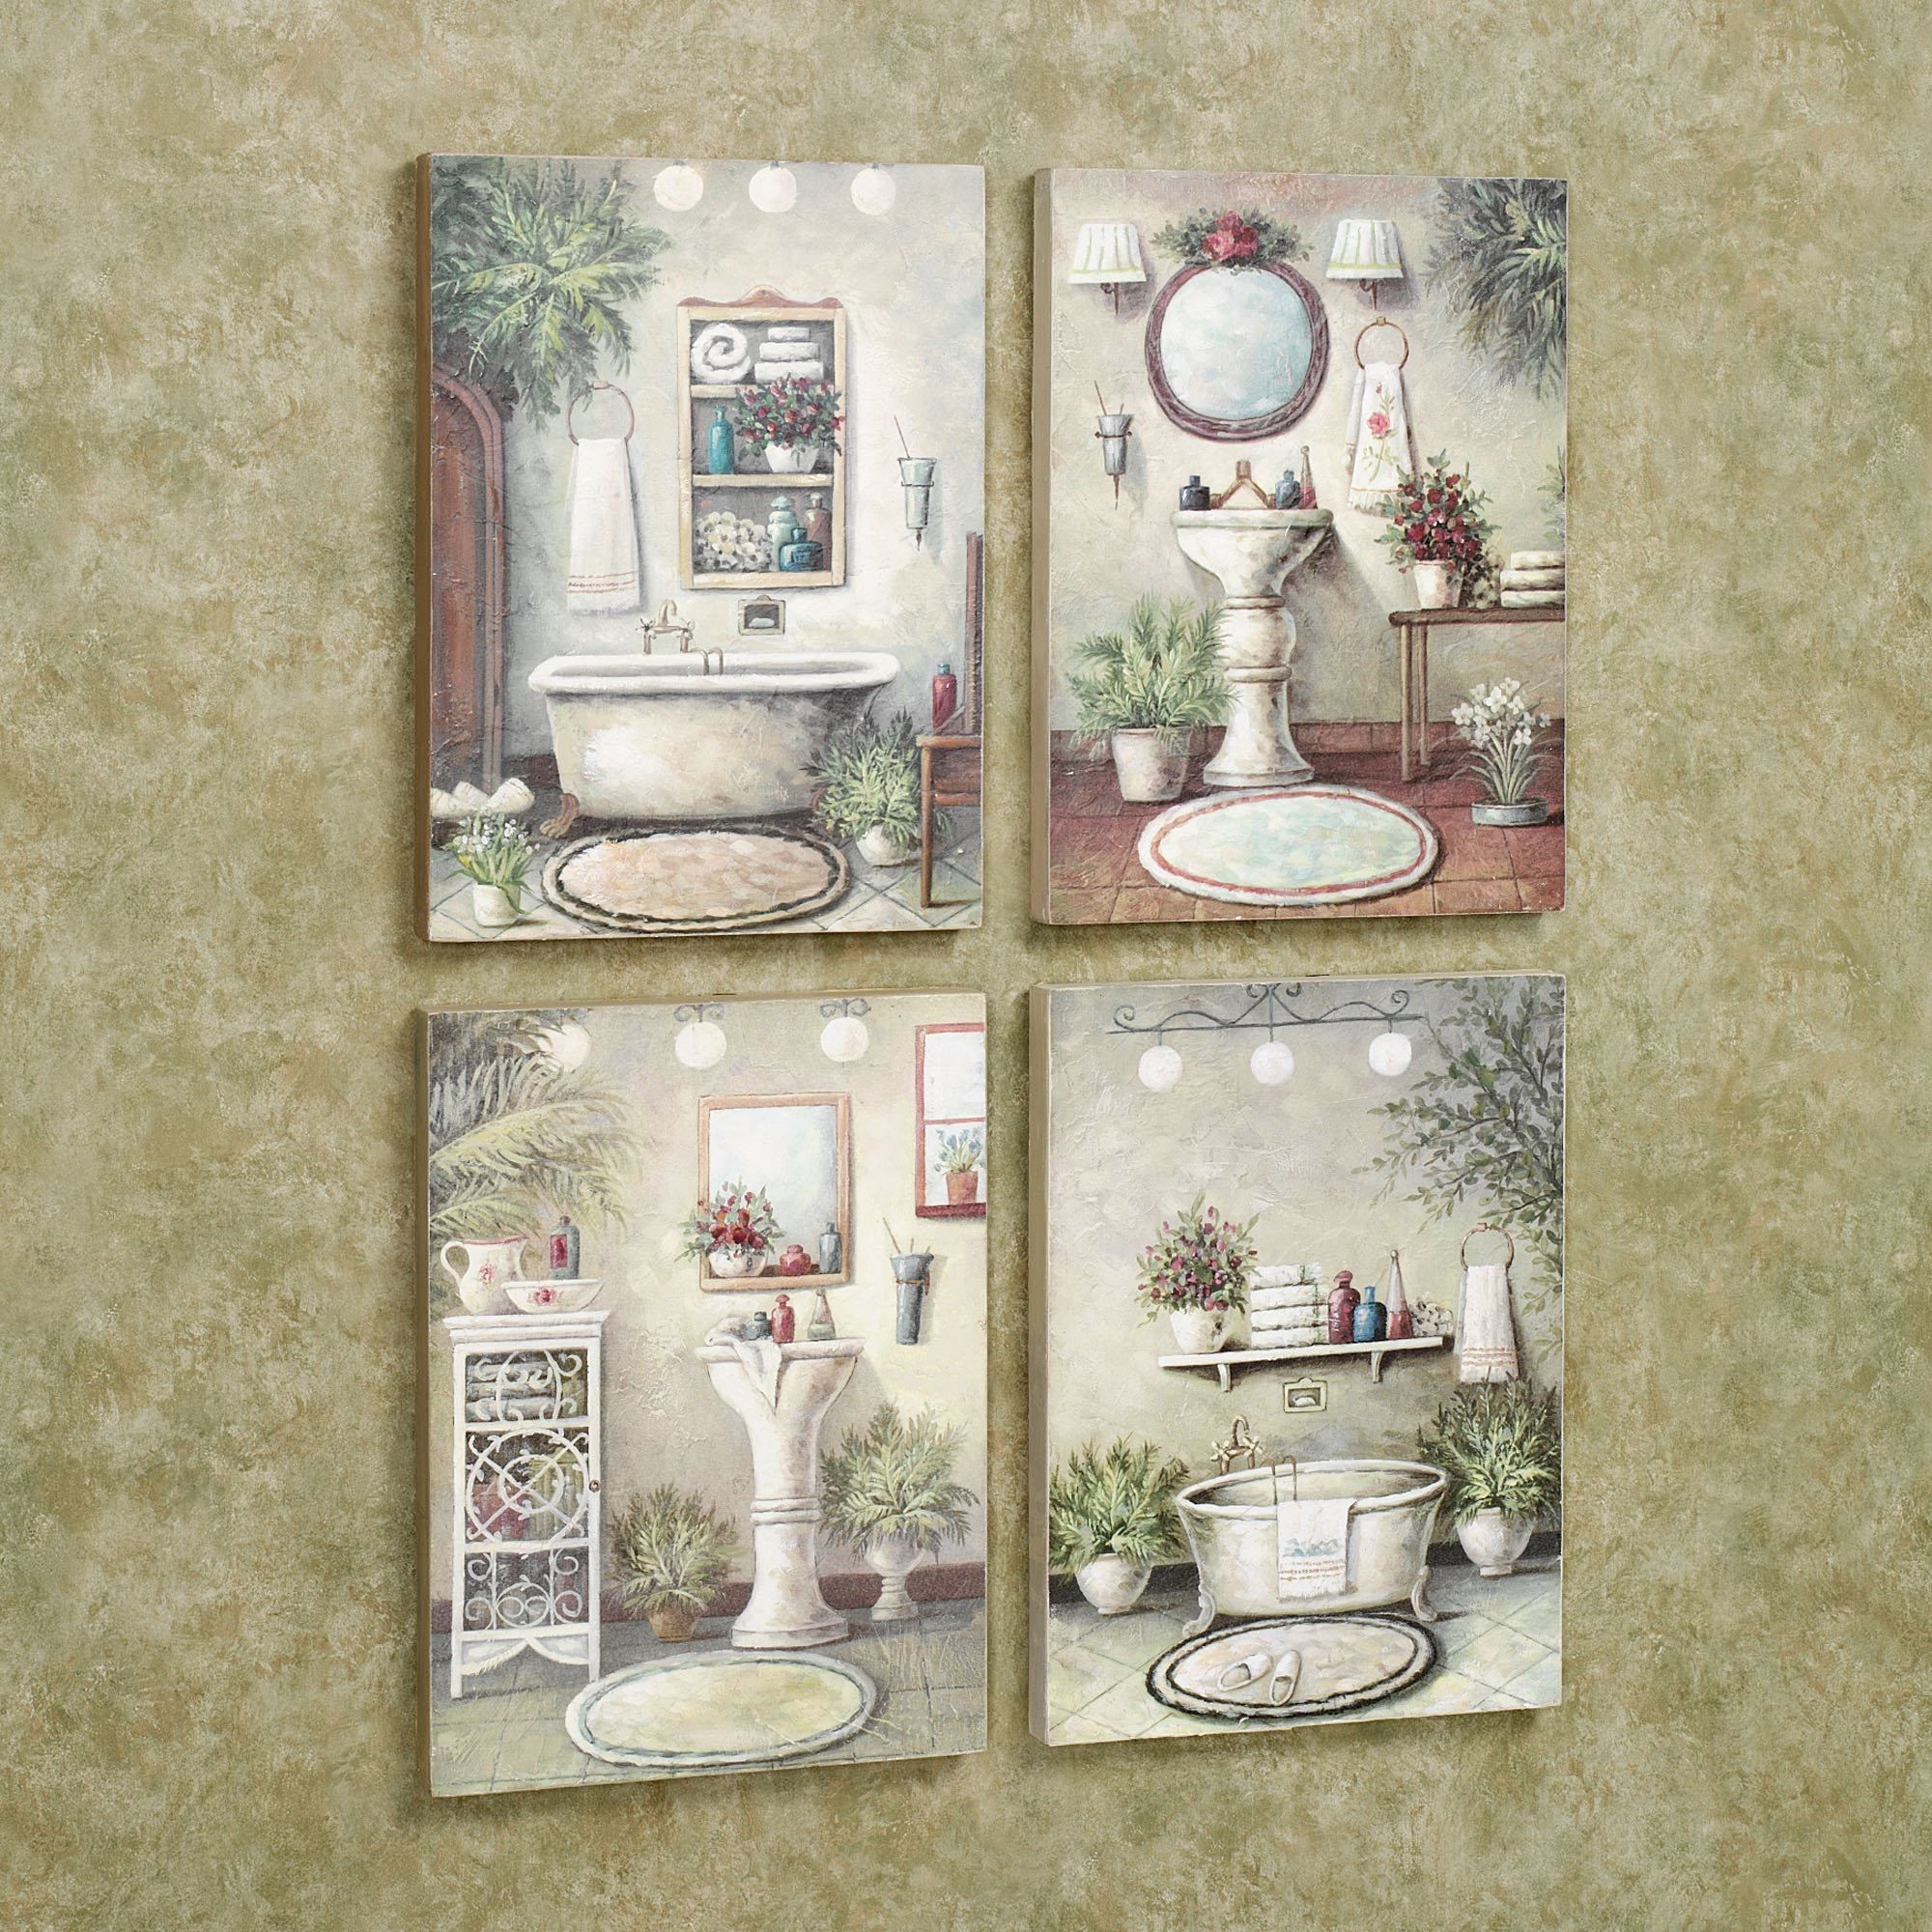 Interior Bathroom Pictures For Wall bathroom bliss wooden wall art plaque set multi warm of four